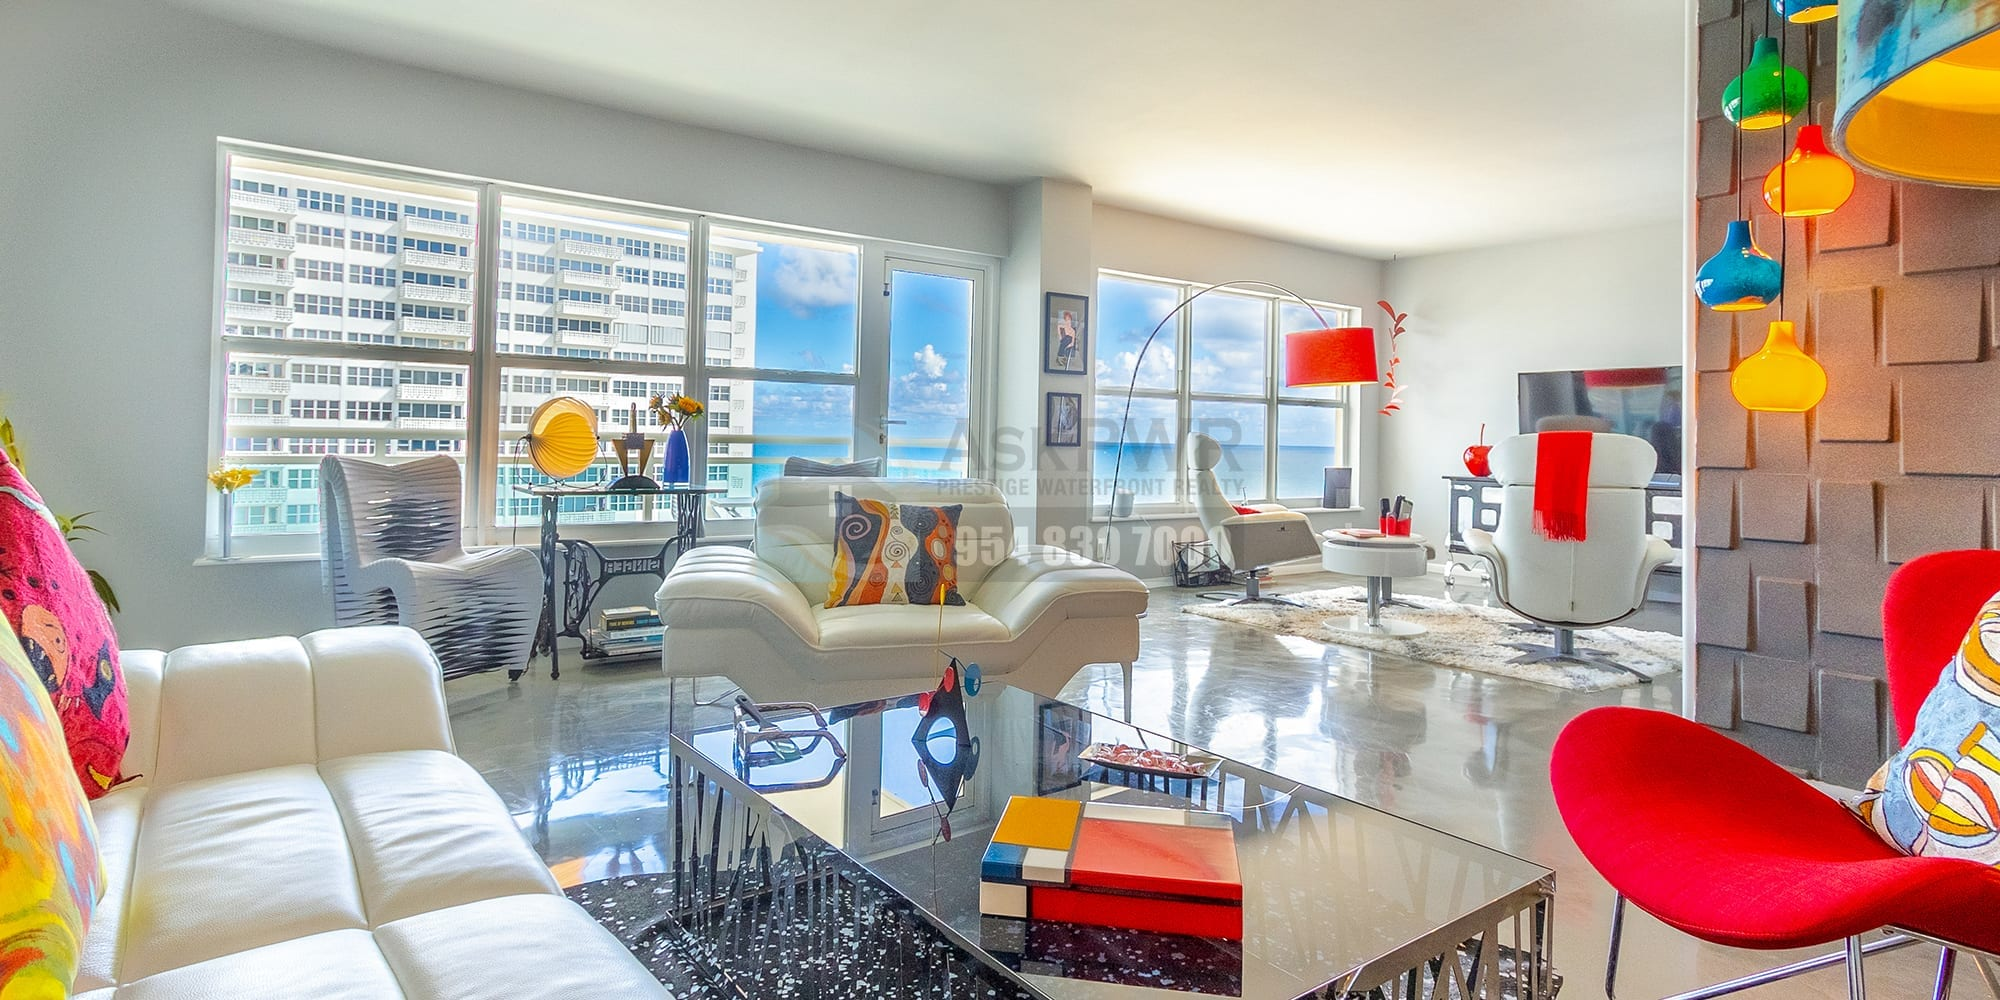 Playa Del Mar 916 Condo for Sale F1021719 – Galt Ocean Mile Real Estate Listings – 3900 Galt Ocean Dr 916 Fort Lauderdale FL 33308 Prestige Waterfront Realty | AskPWR